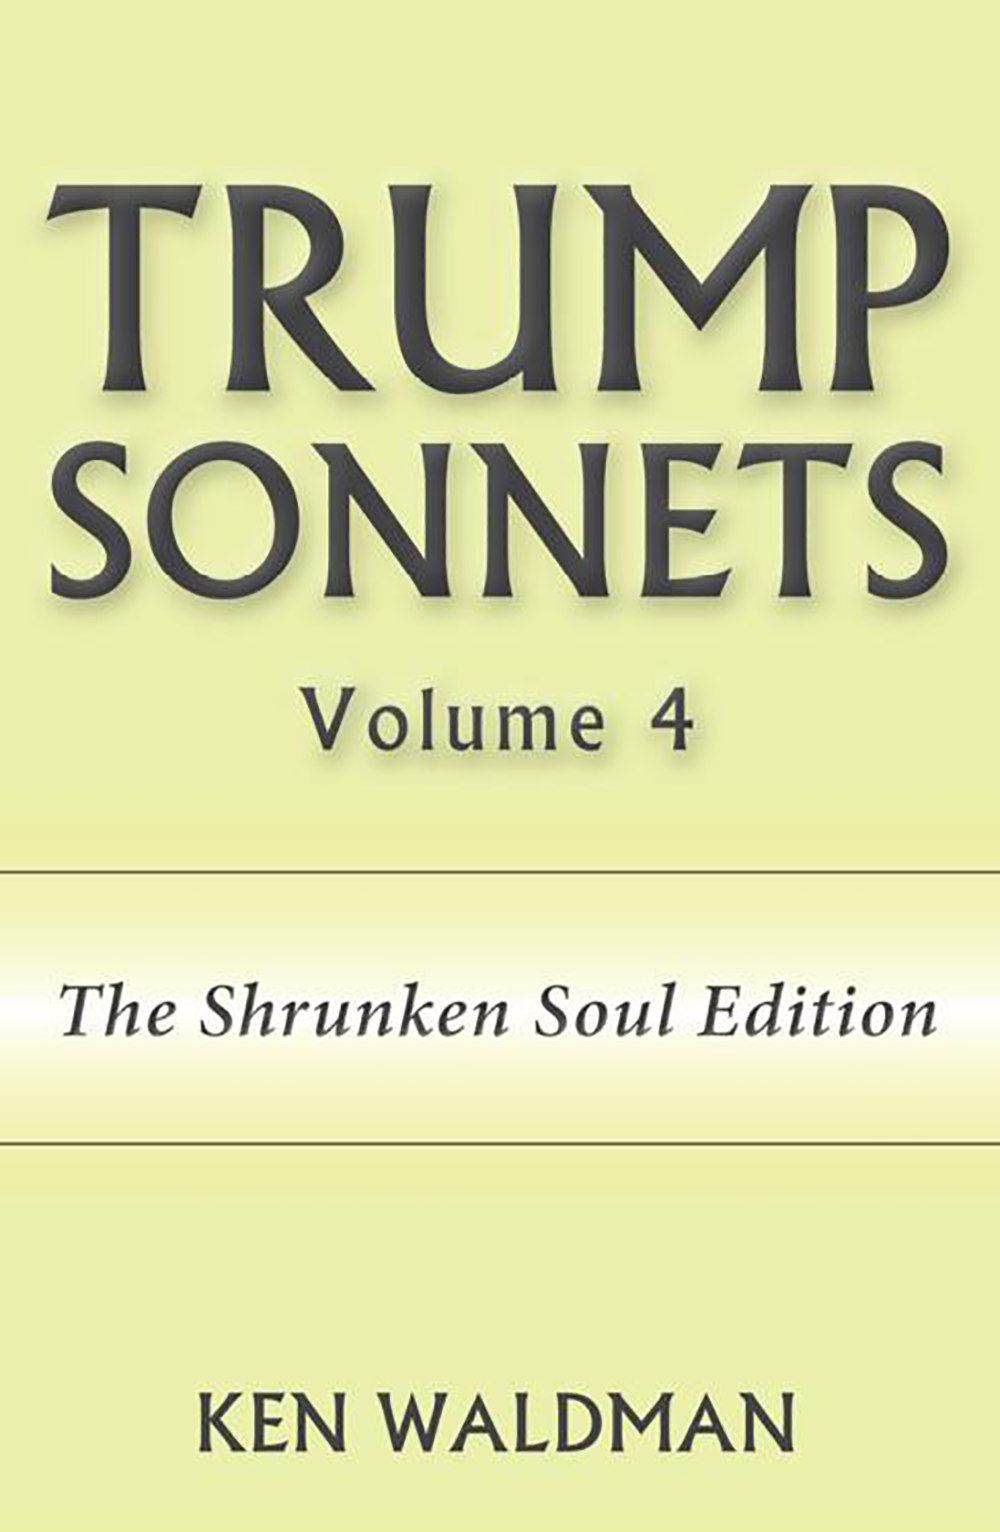 Trump Sonnets, Volume 4 (The Shrunken Soul Edition)